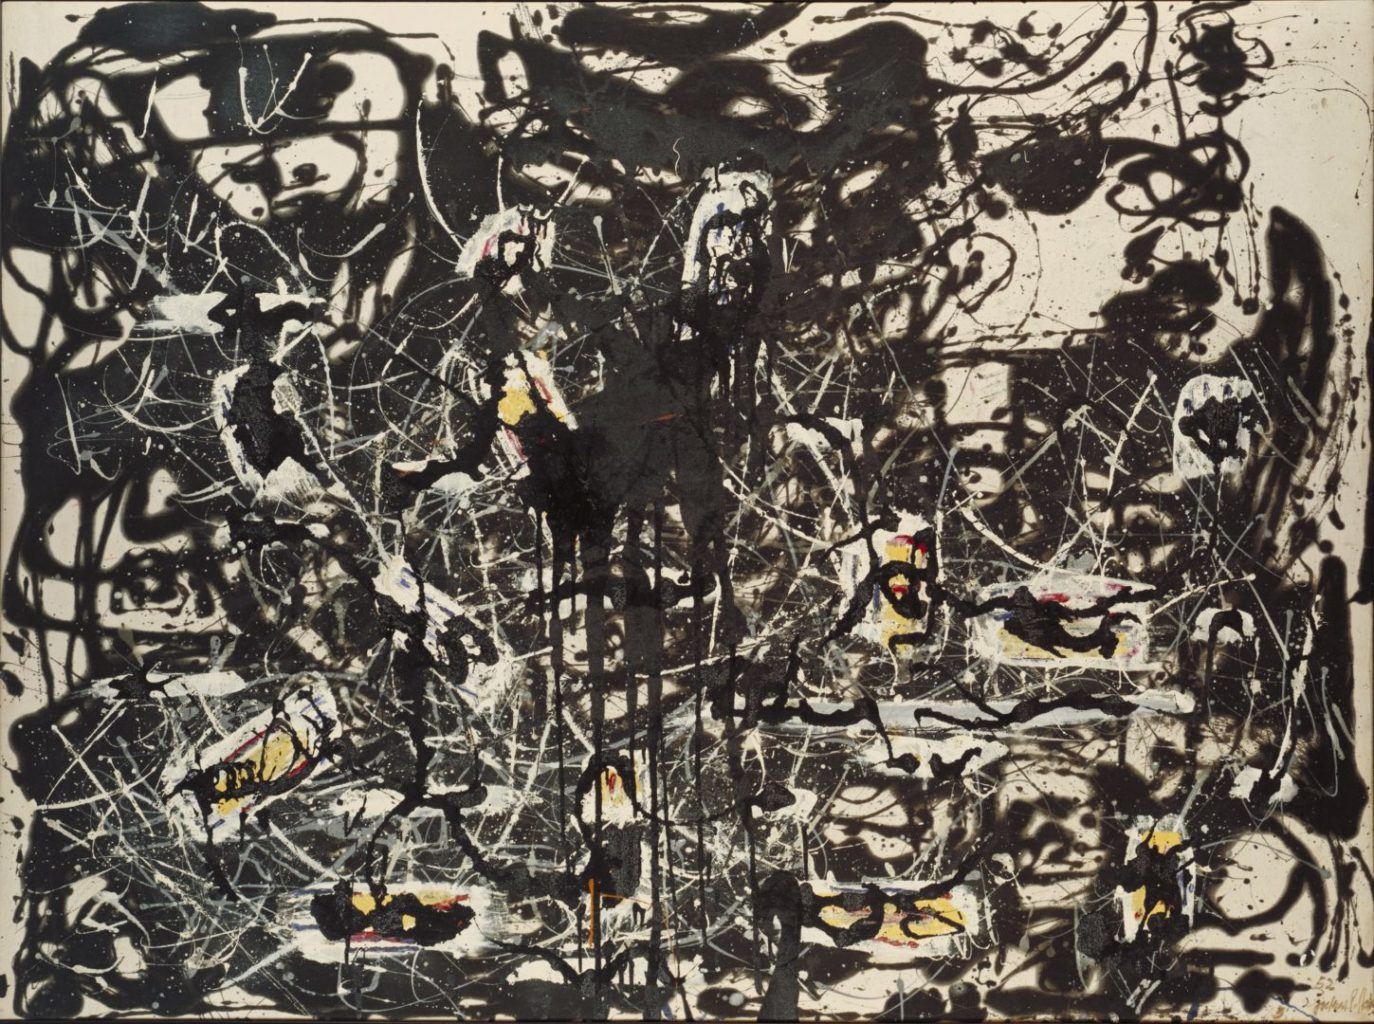 jackson pollock blind spots the london magazine jackson pollock yellow islands 1952 acirccopy the pollock krasner foundation ars ny and